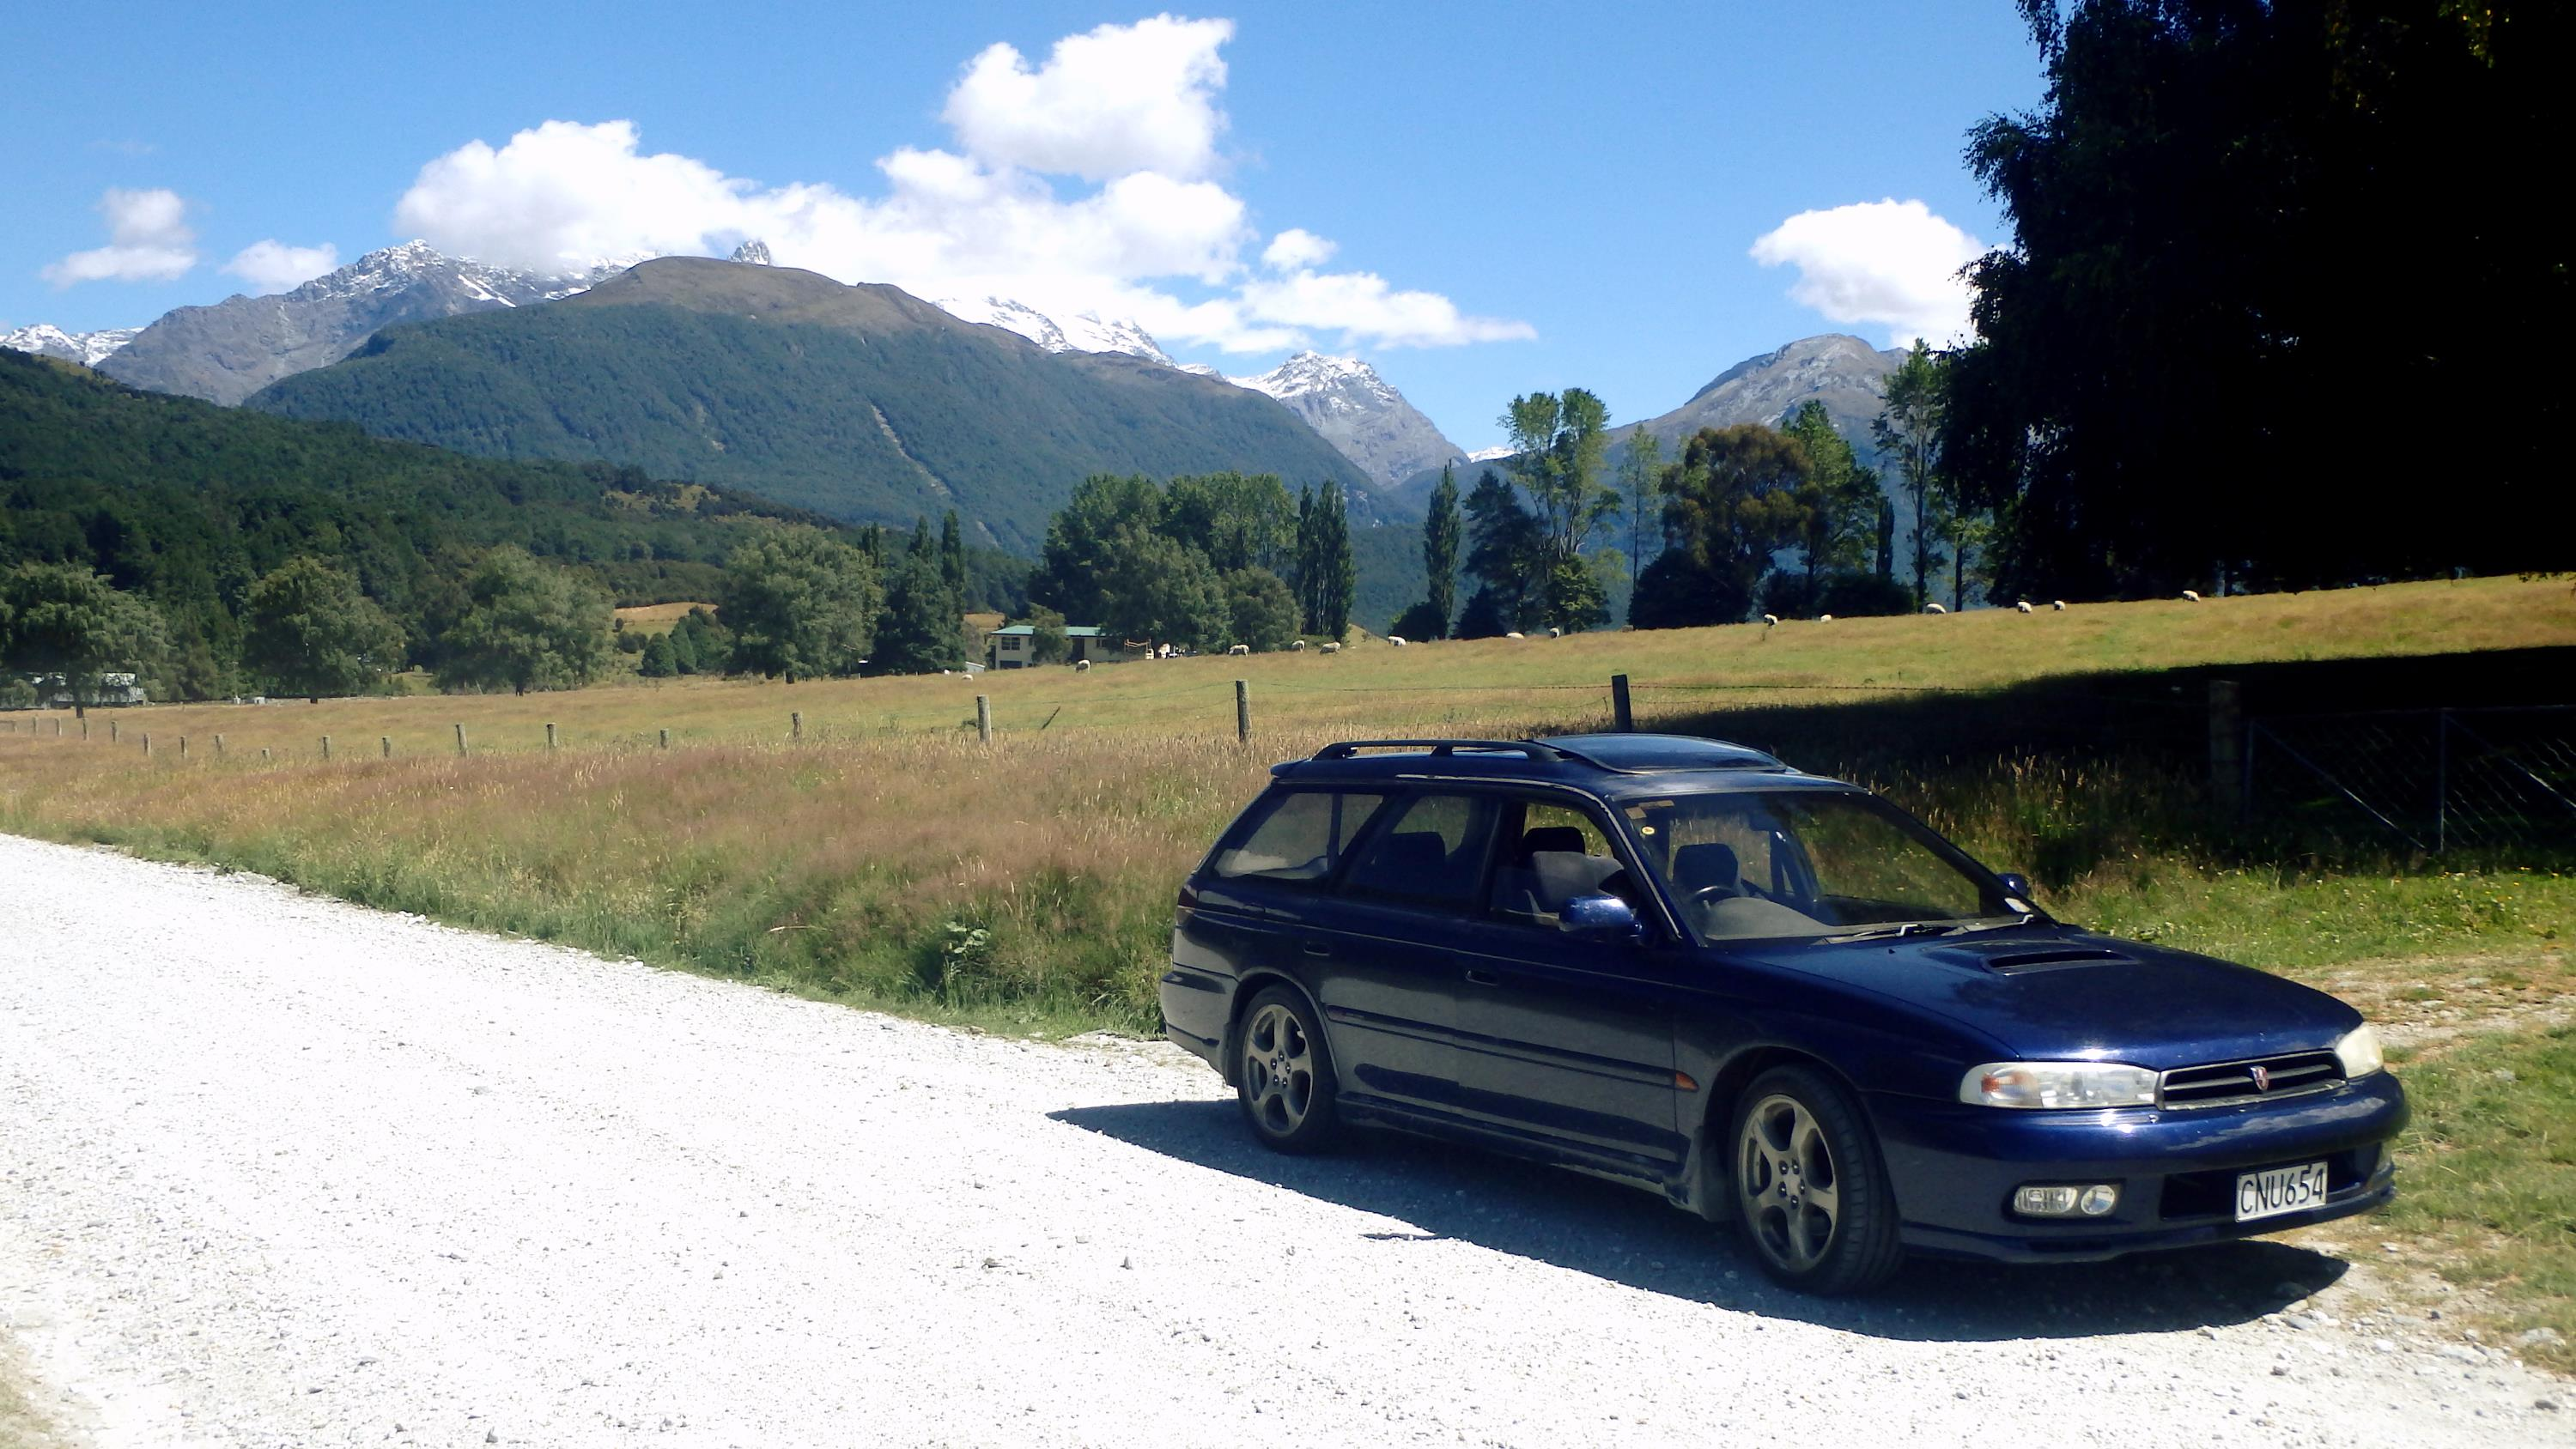 Glenorchy roadtrip, NZ